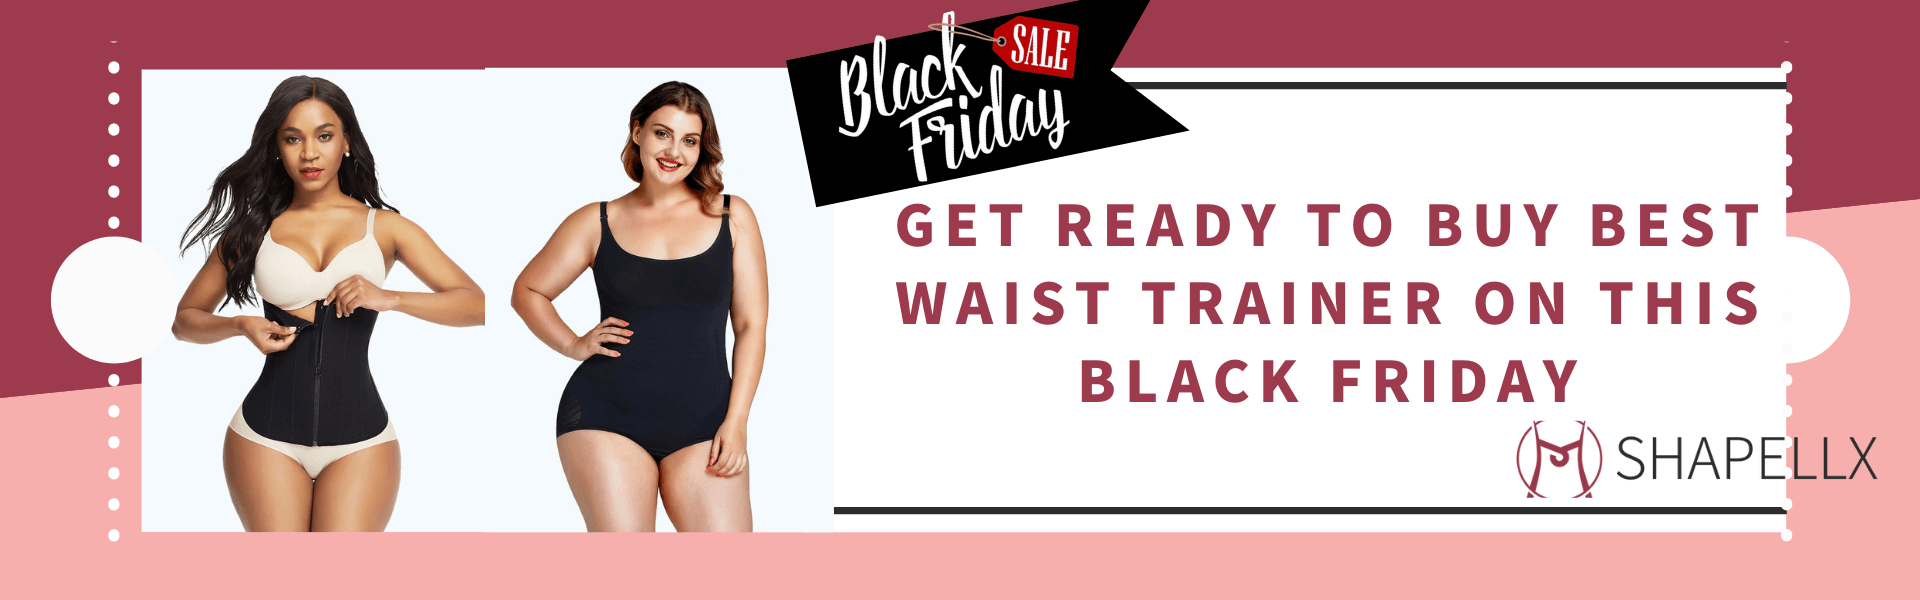 Get Ready to Buy Best Waist Trainer on This Black Friday